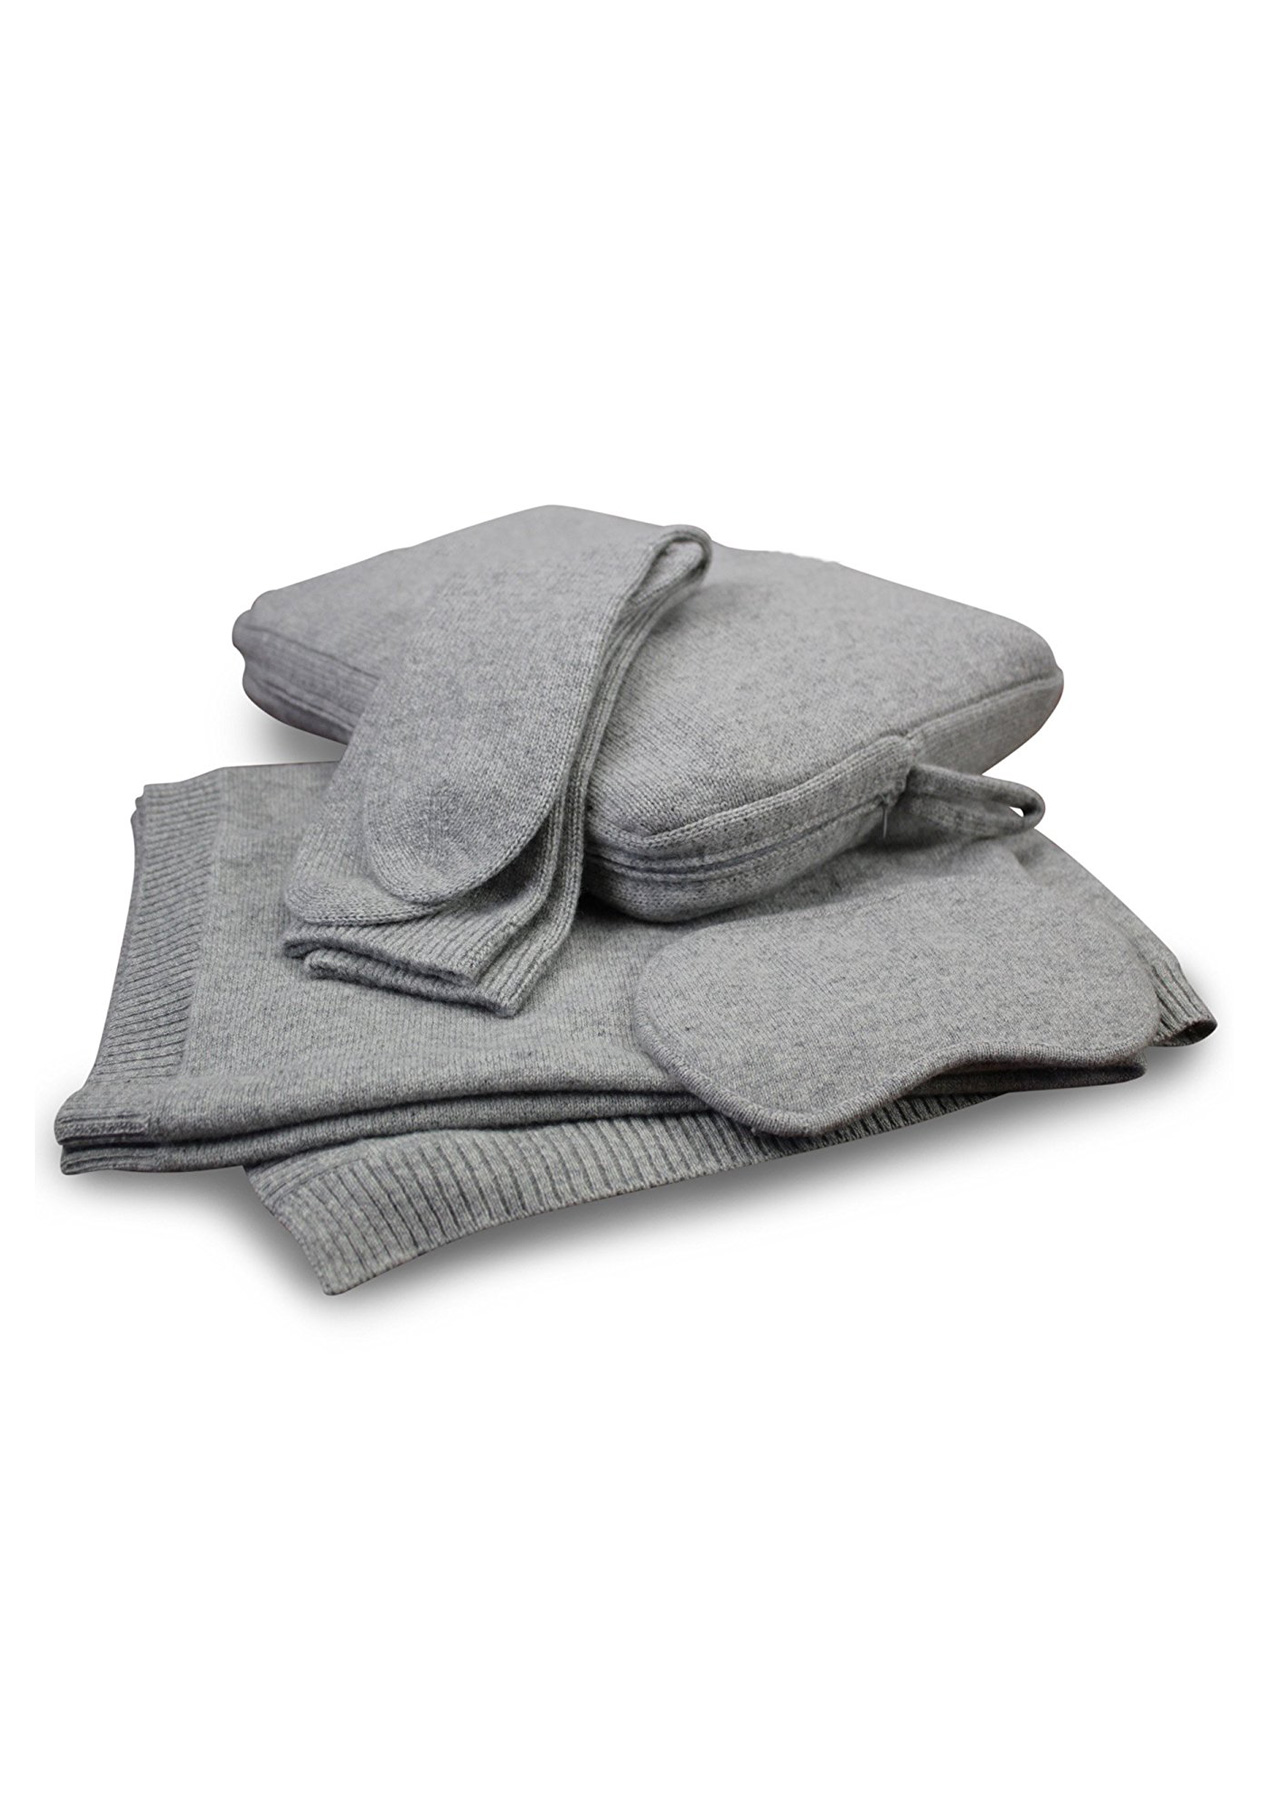 Jet&Bo 100% Cashmere Travel Set